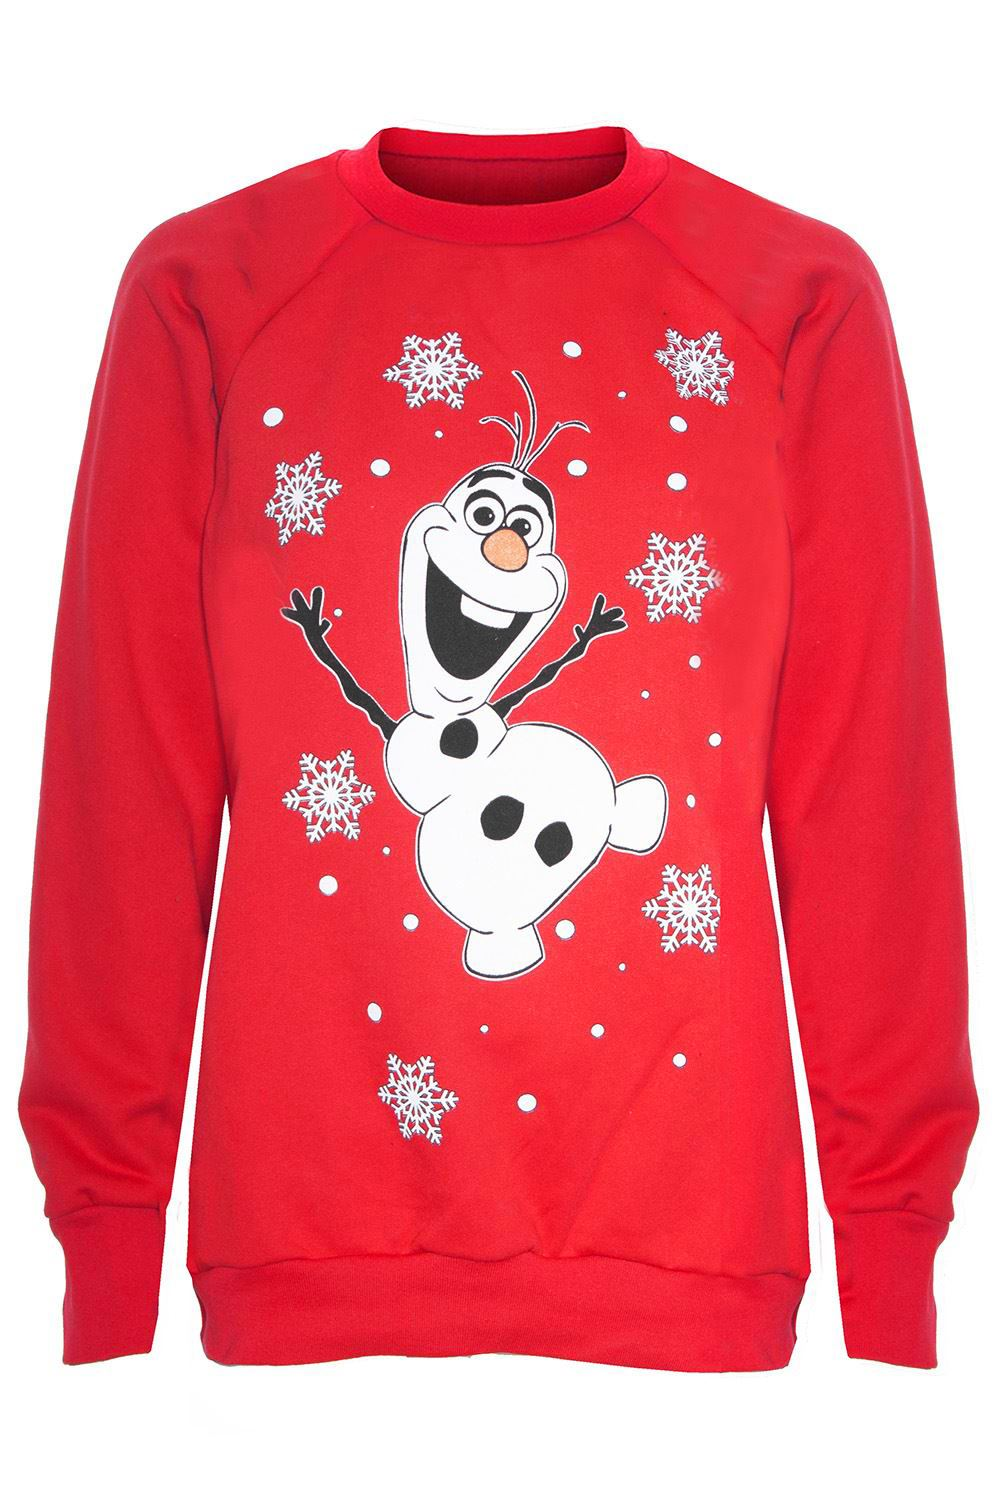 ladies christmas jumper next day delivery